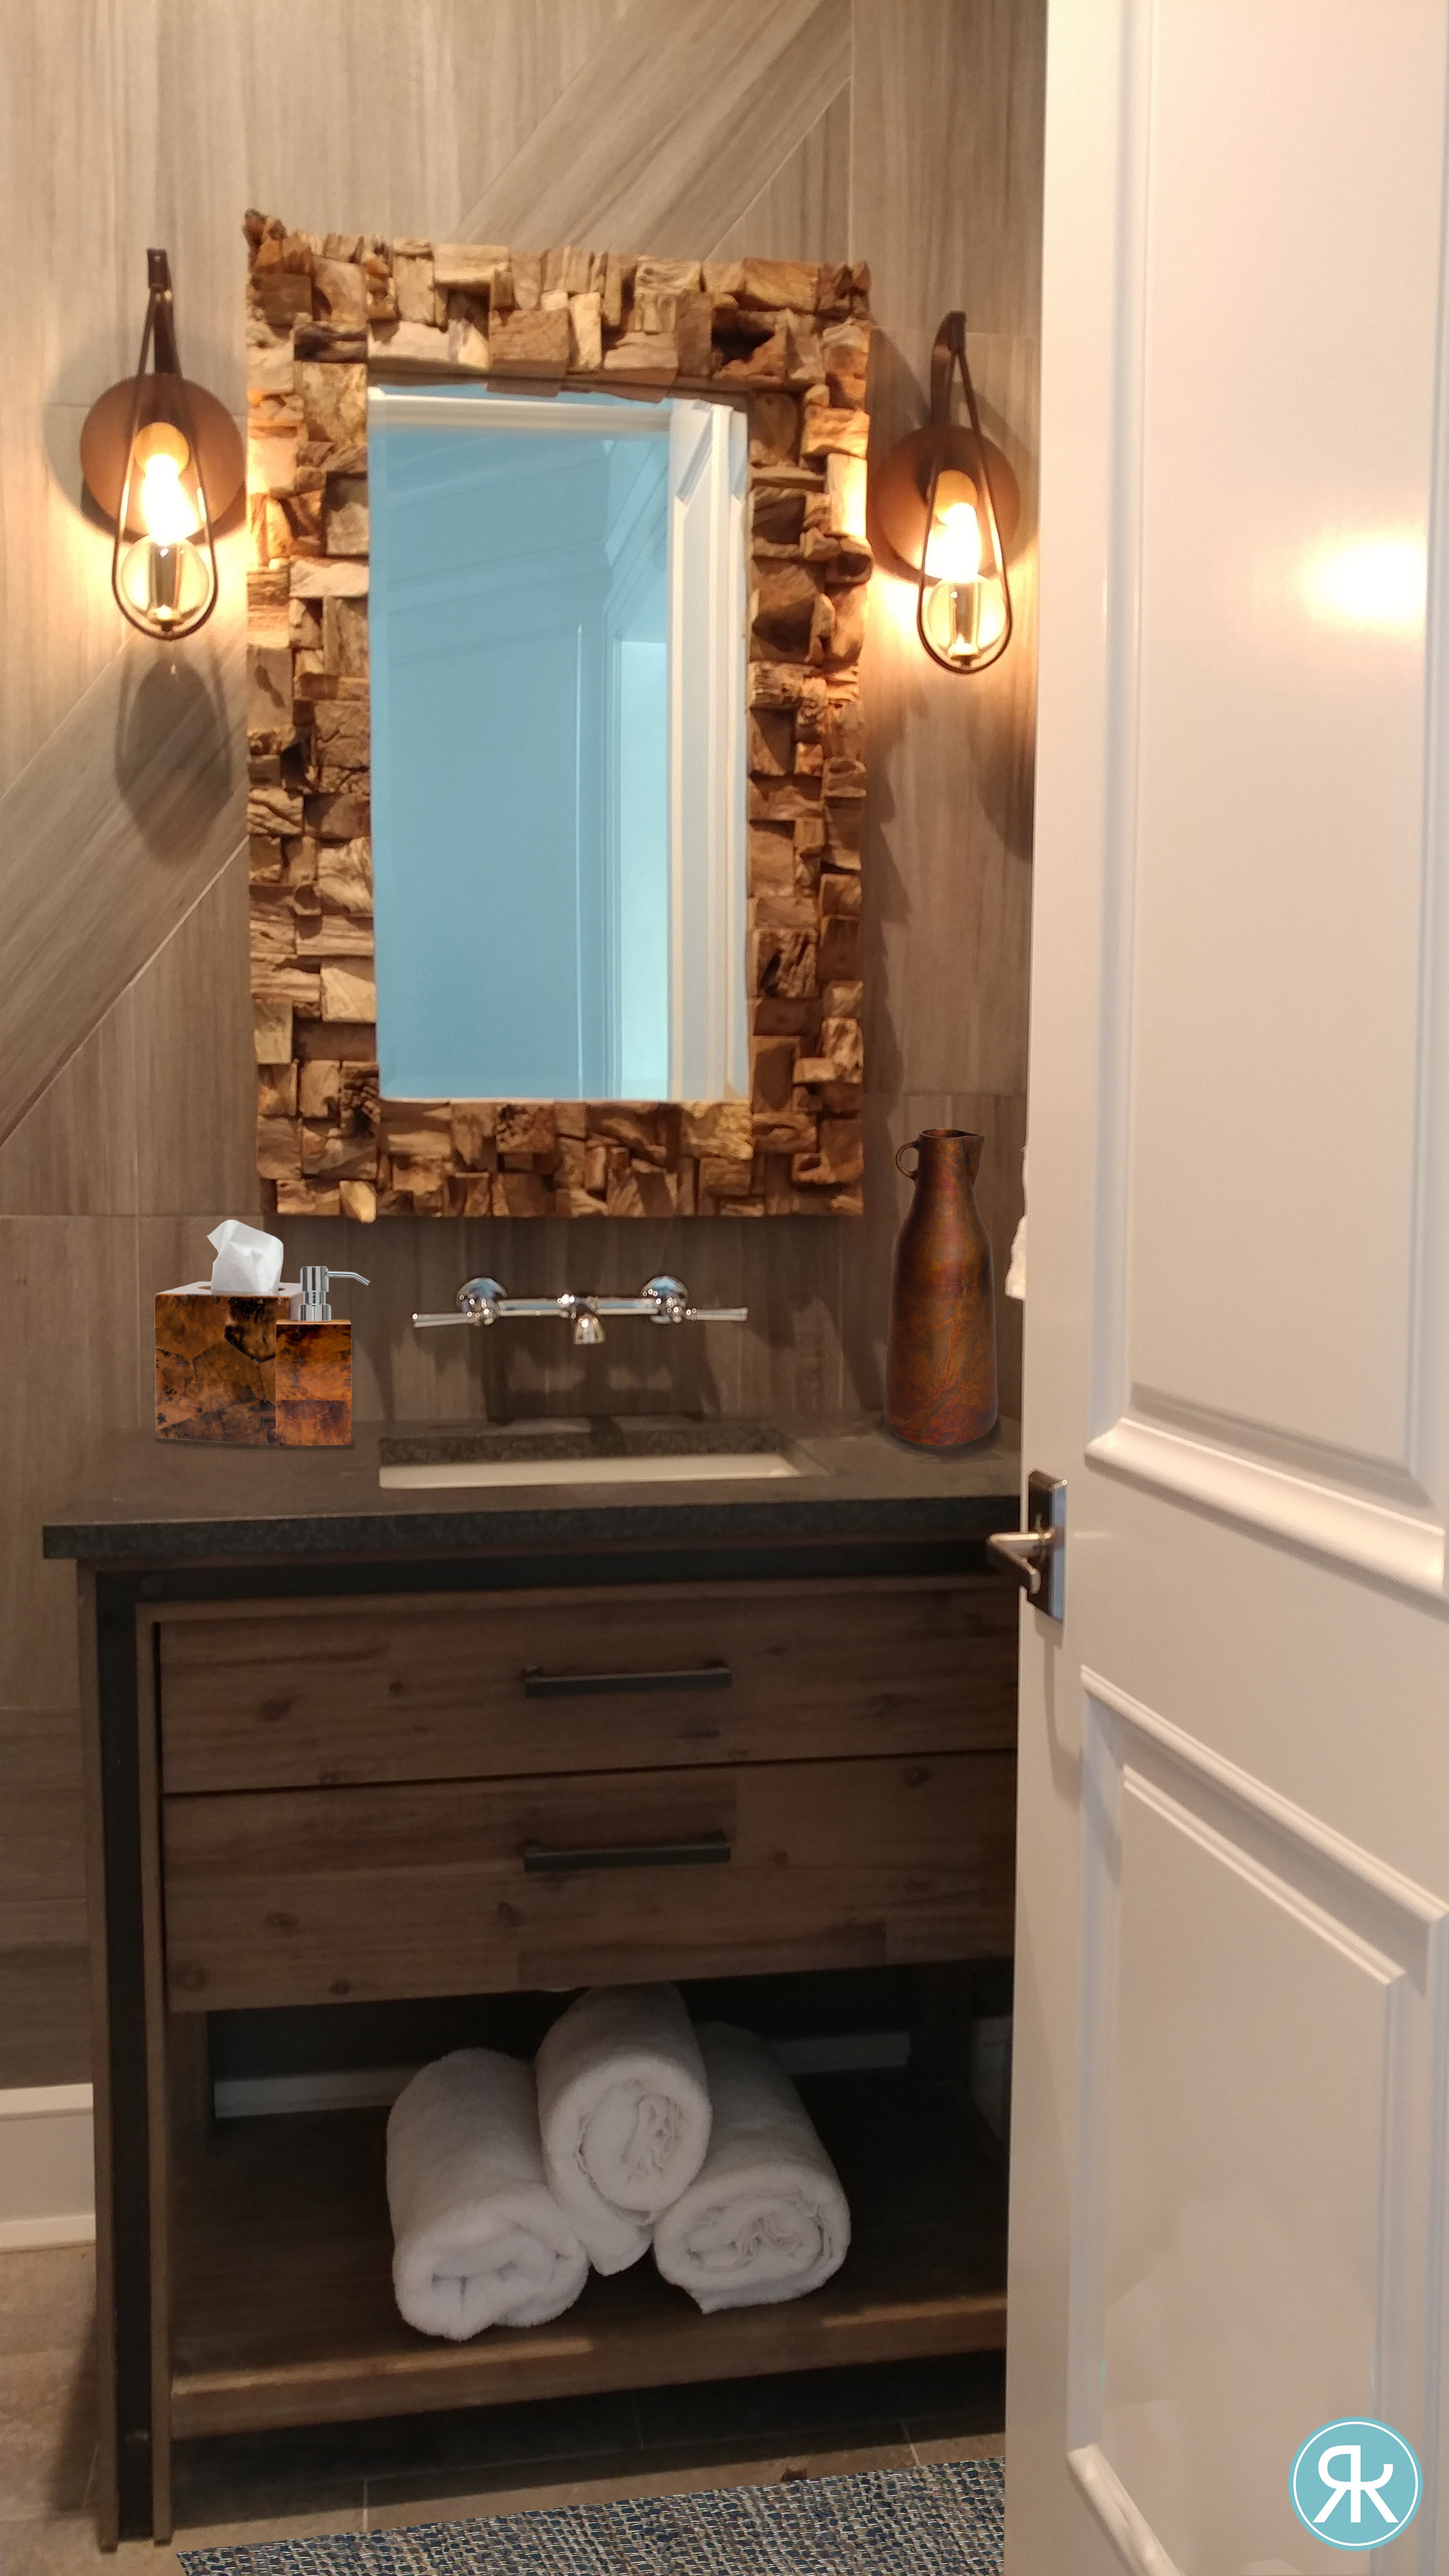 Bathroom-PowderRoom-Raw-Wood-Mirror-Uttermost-Sconces-Warm-Tile-Vanity-Elegant-Unique-InteriorDesign-Regina-Kay-Interiors.jpg